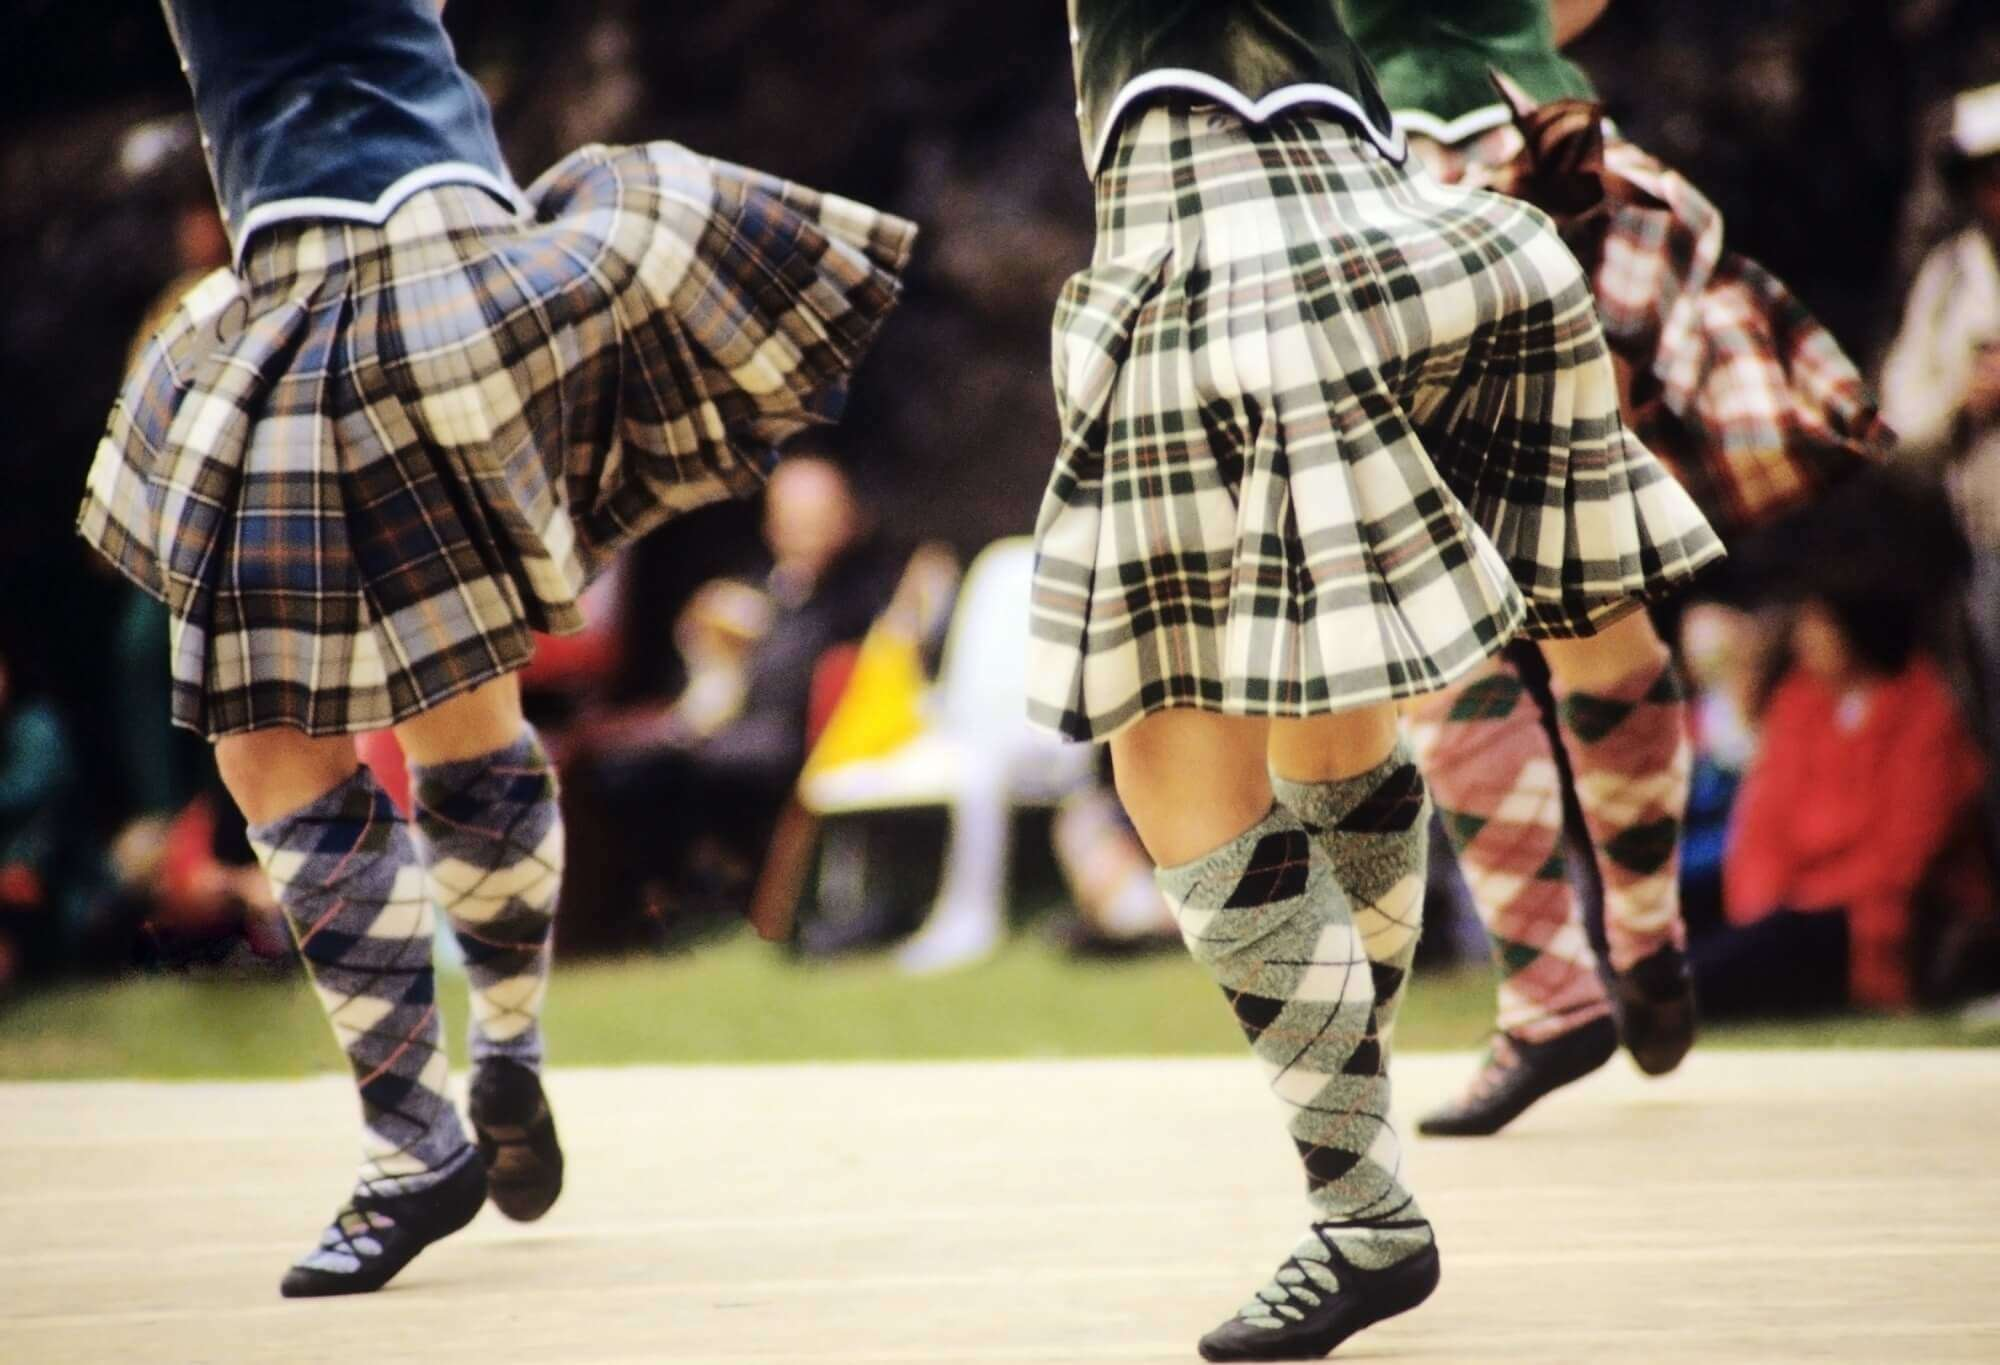 Experience Scottish Culture with Ceilidh!